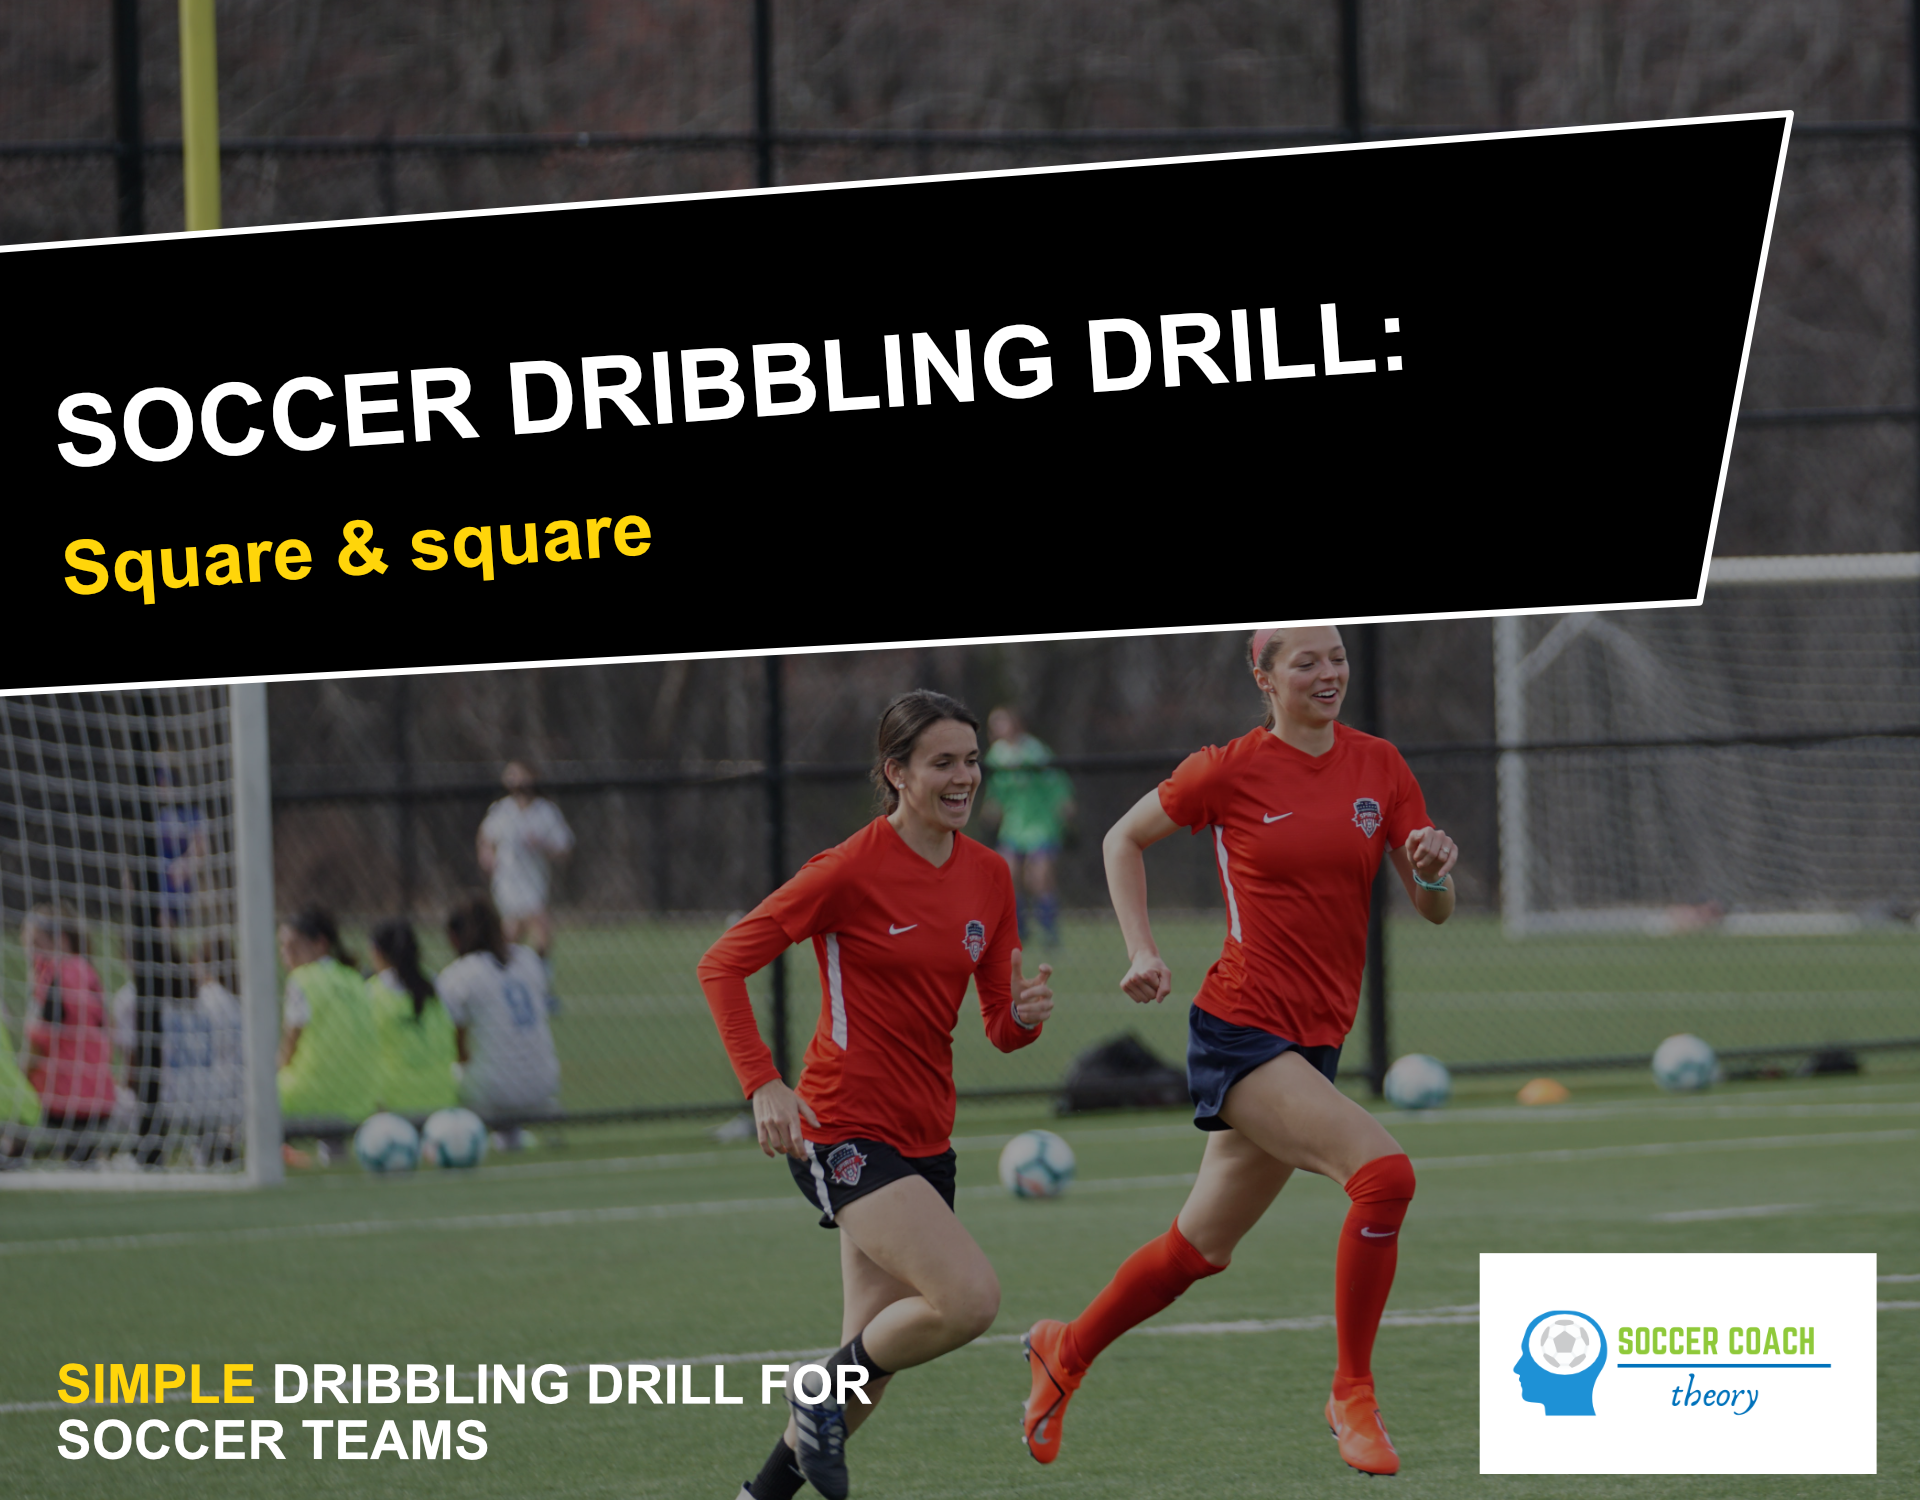 Soccer dribbling drill: square square